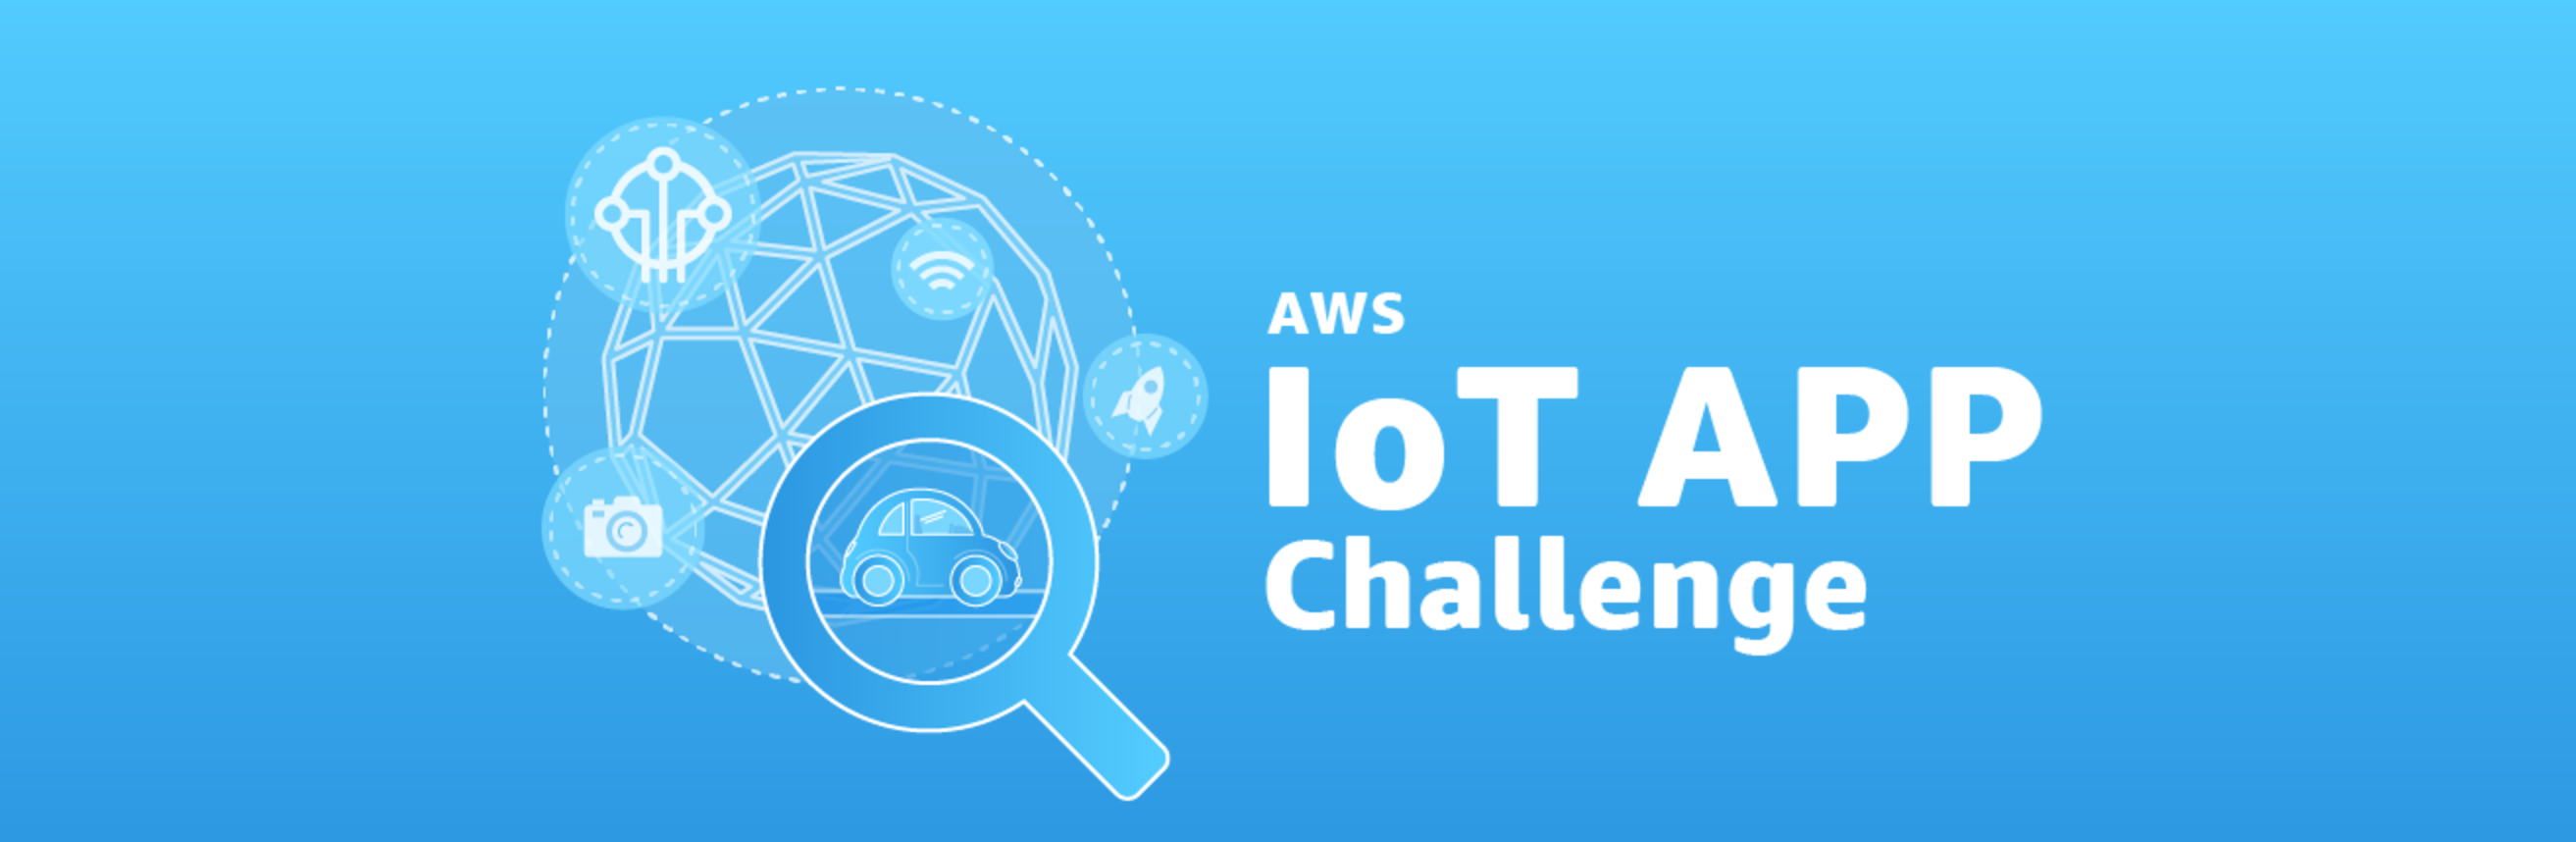 Join the AWS IoT App Challenge — $12,000 in Prizes! (Global